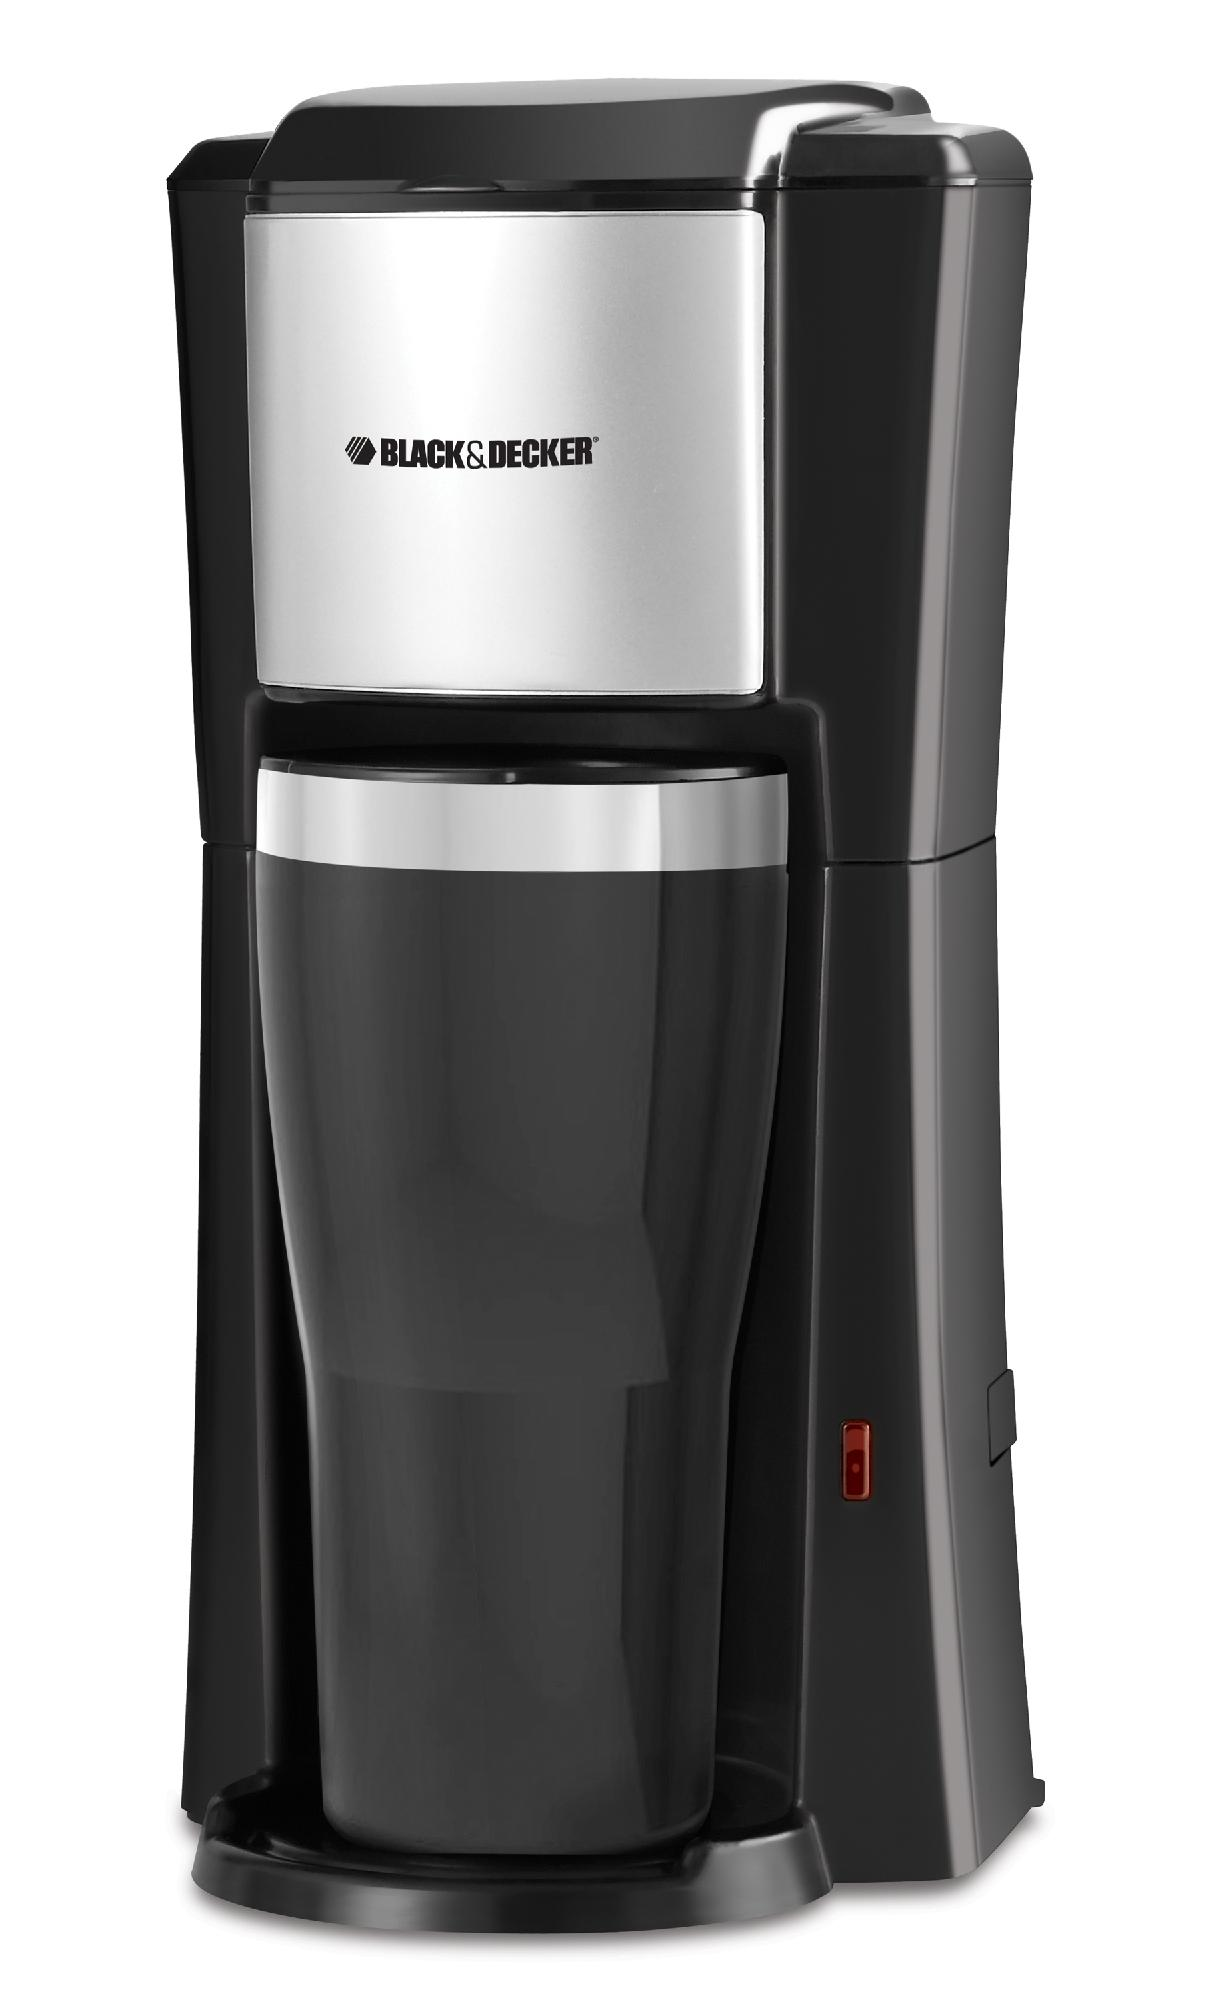 Black Decker 16 Oz Black Coffee Maker Travel Mug Included Permanent Filter Auto Shut Off Standard Distributors Limited